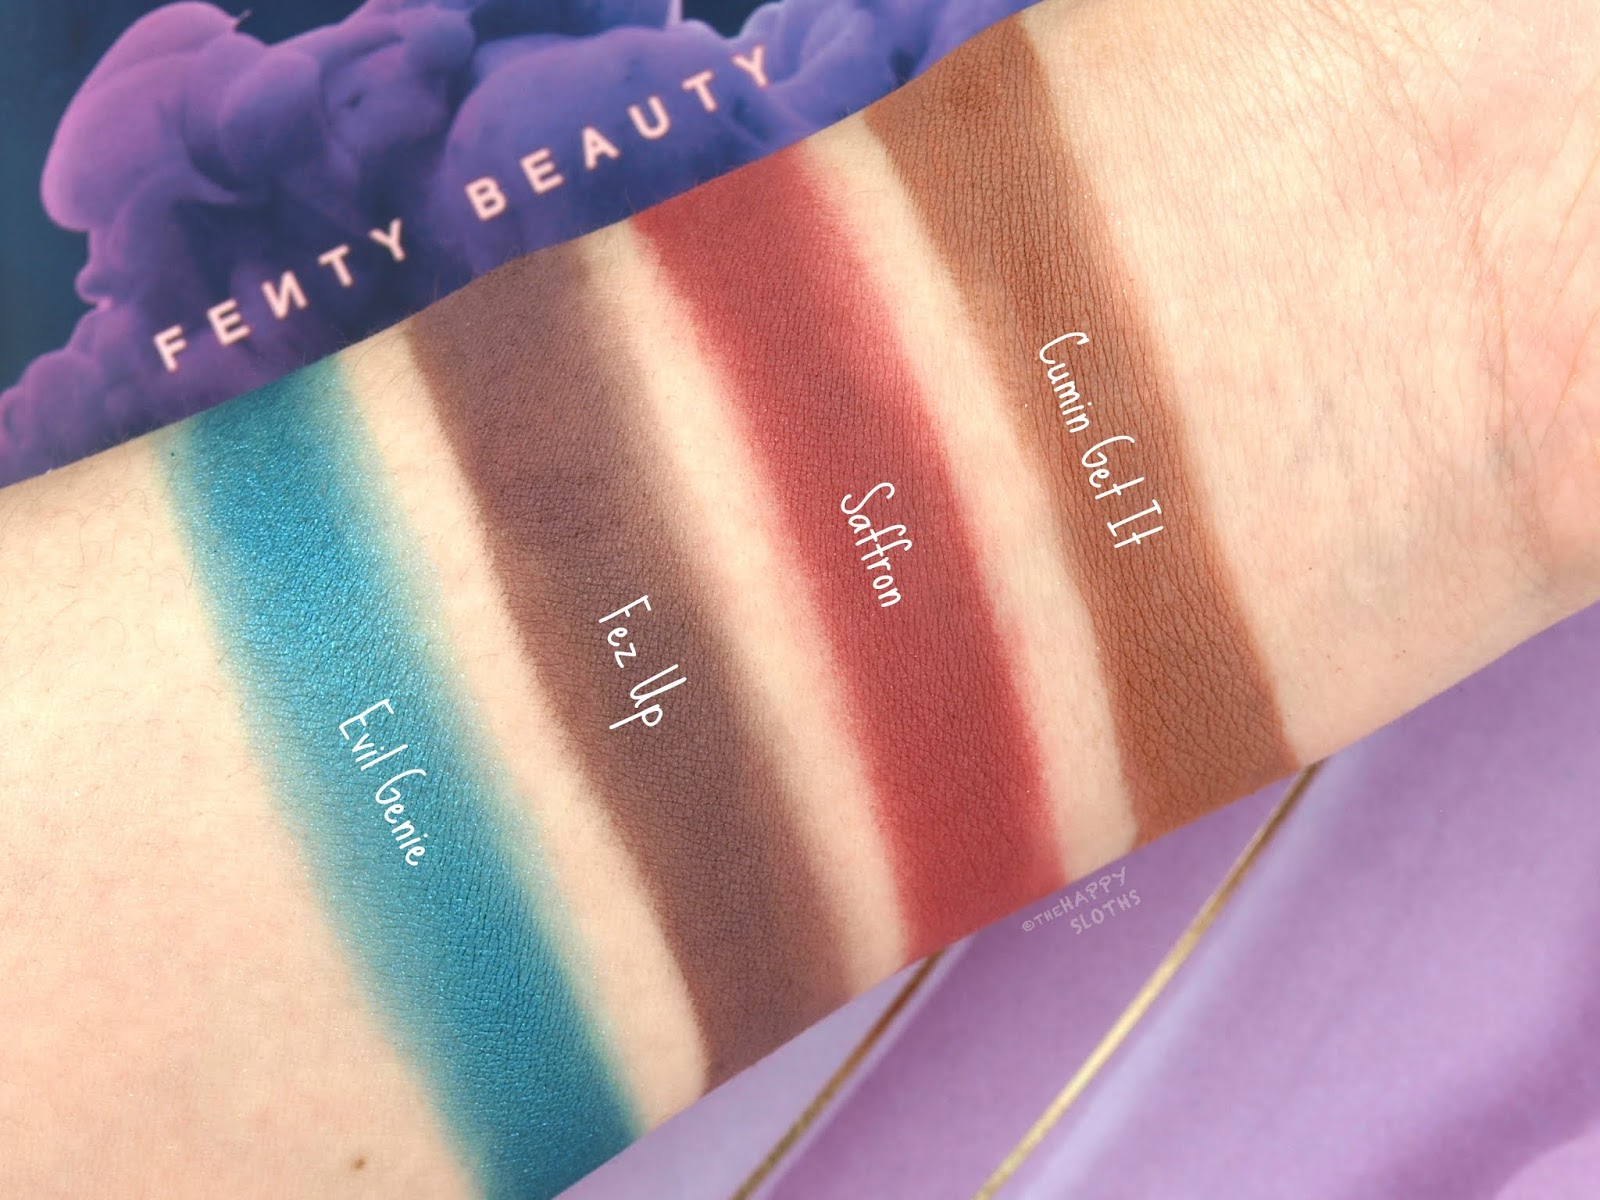 Fenty Beauty By Rihanna | Moroccan Spice Eyeshadow Palette: Review and Swatches